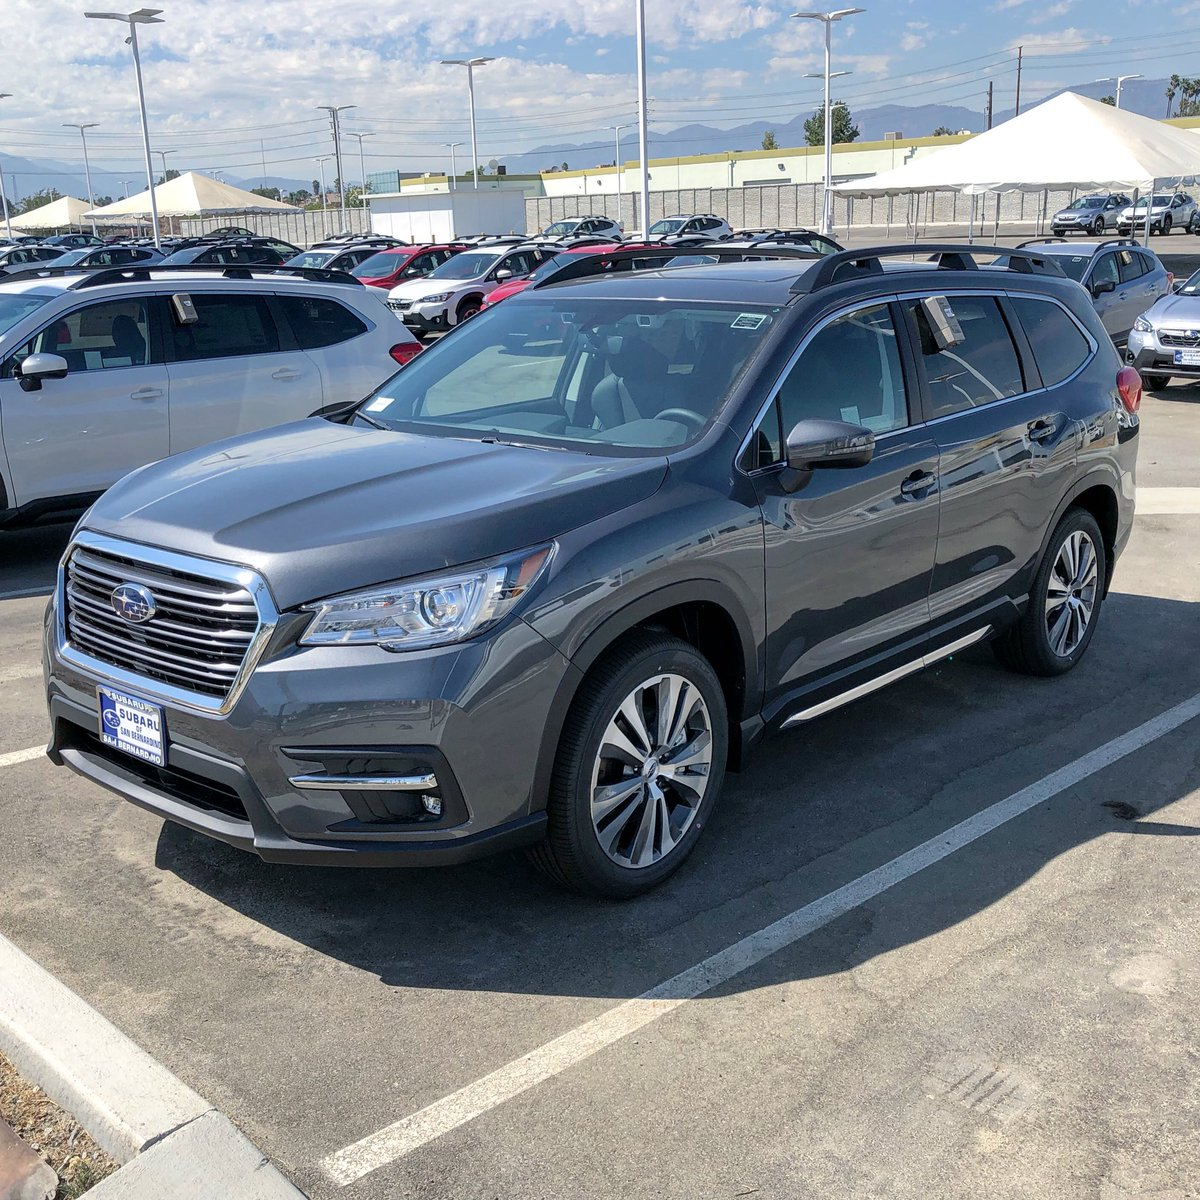 Right now you can get 0% APR financing for 63 months on a new 2020 #Subaru Ascent. Find the one for you today! https://t.co/DhFp7y9W1i